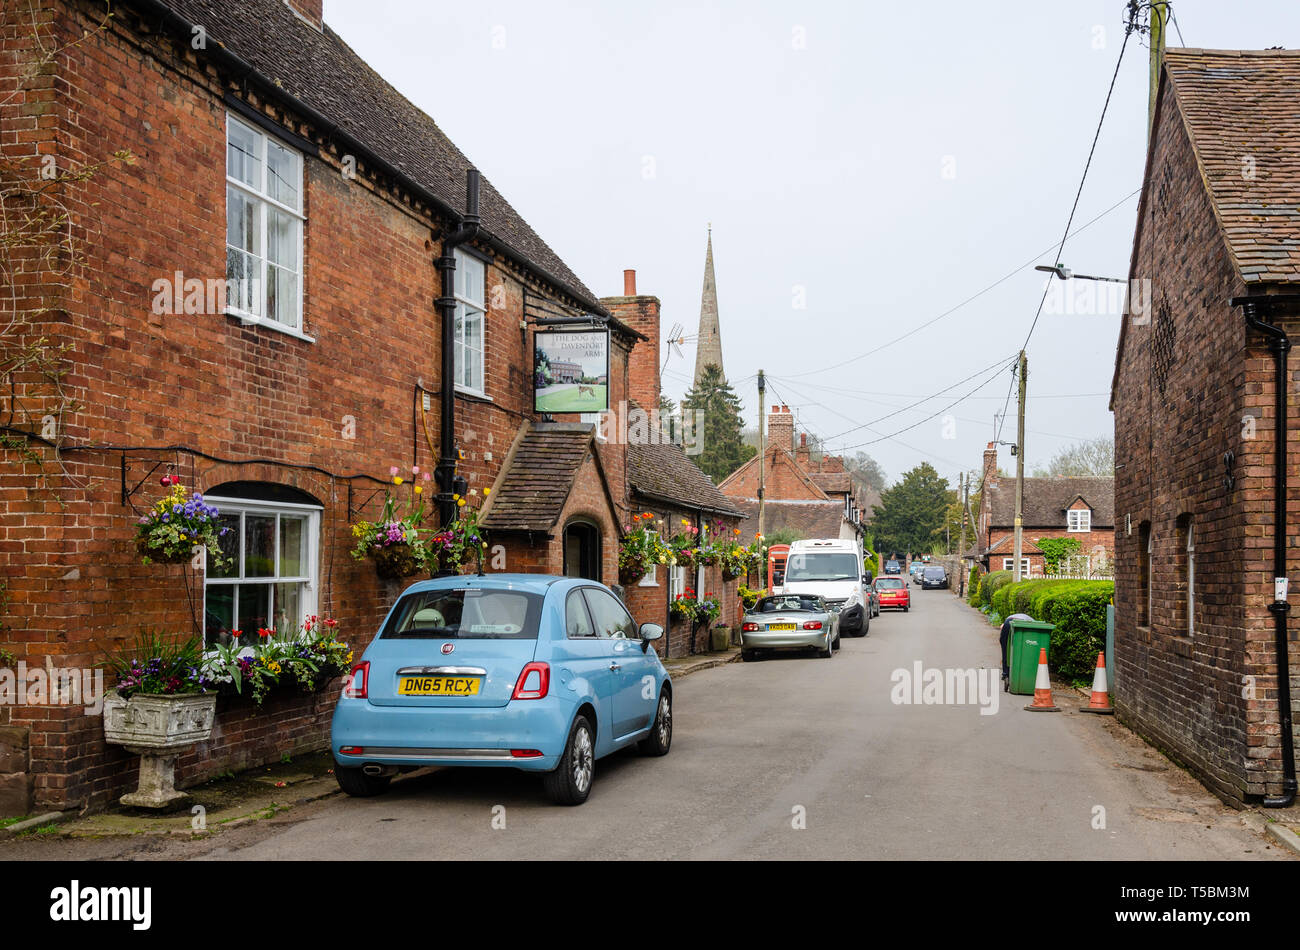 A view down Main Street in the village of Worfield in The Shropshire countryside in the UK. - Stock Image